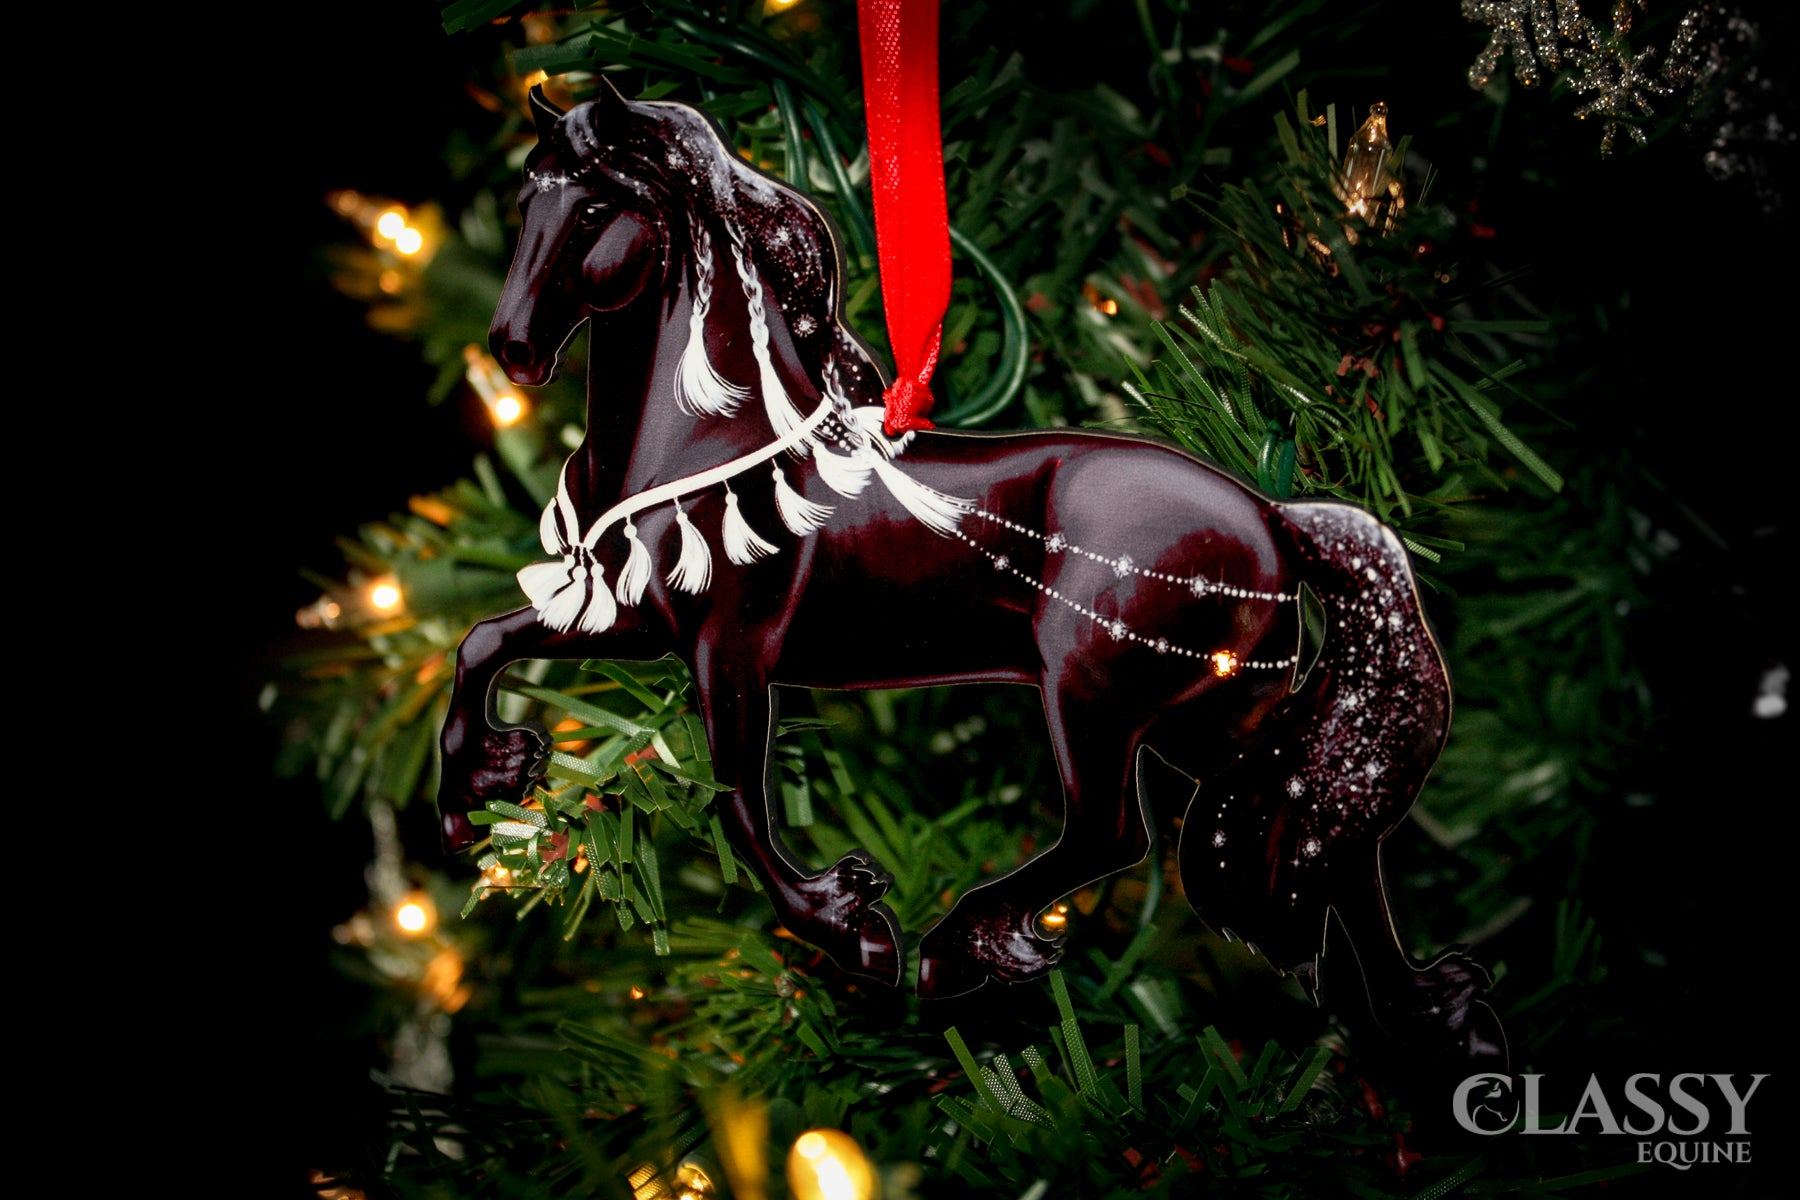 Horse Christmas Ornament Friesian Horse With White Decorations Classy Equine